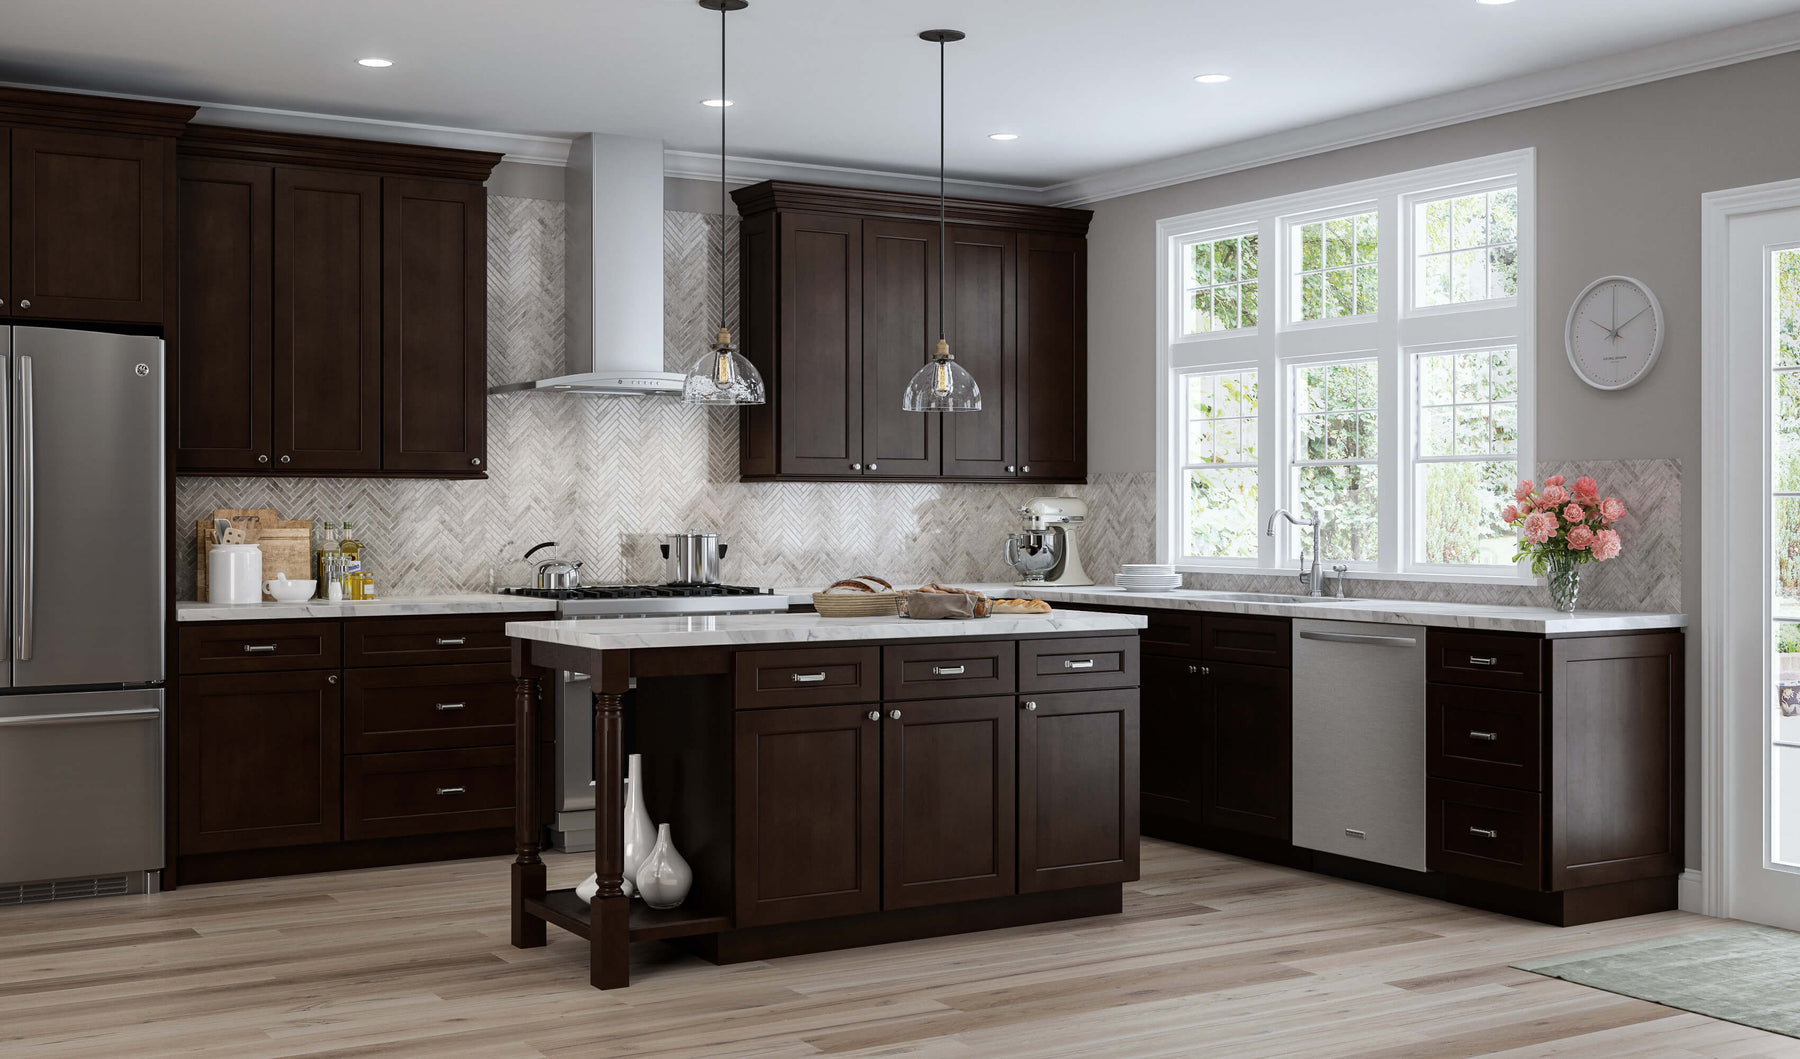 Wholesale cabinet hardware tampa wholesale cabinet for Cheap wall kitchen cabinets